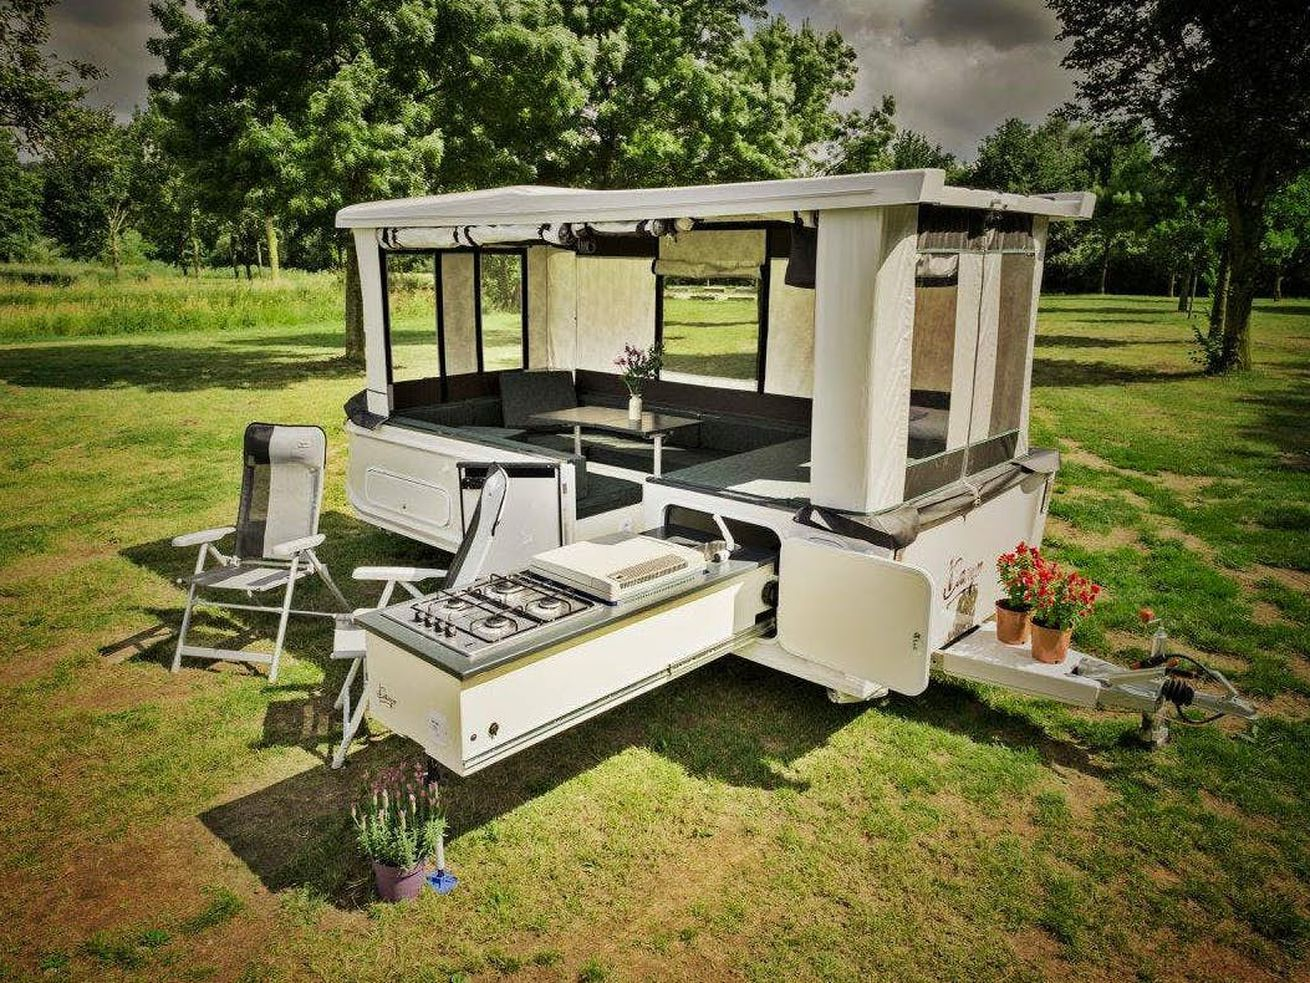 Remote-controlled camper trailer pops up in 30 seconds